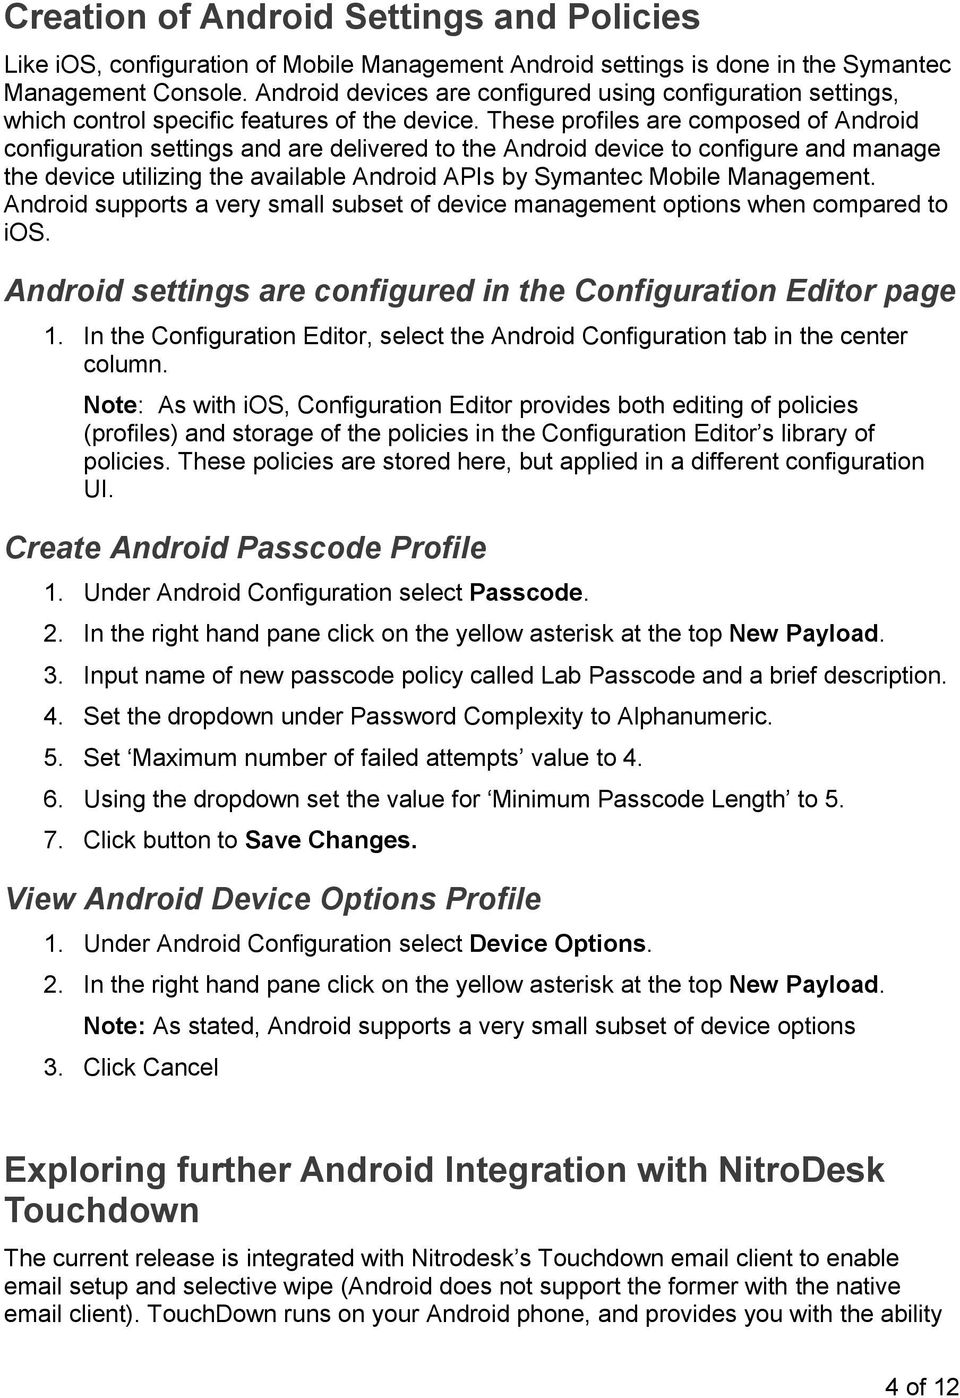 These profiles are composed of Android configuration settings and are delivered to the Android device to configure and manage the device utilizing the available Android APIs by Symantec Mobile